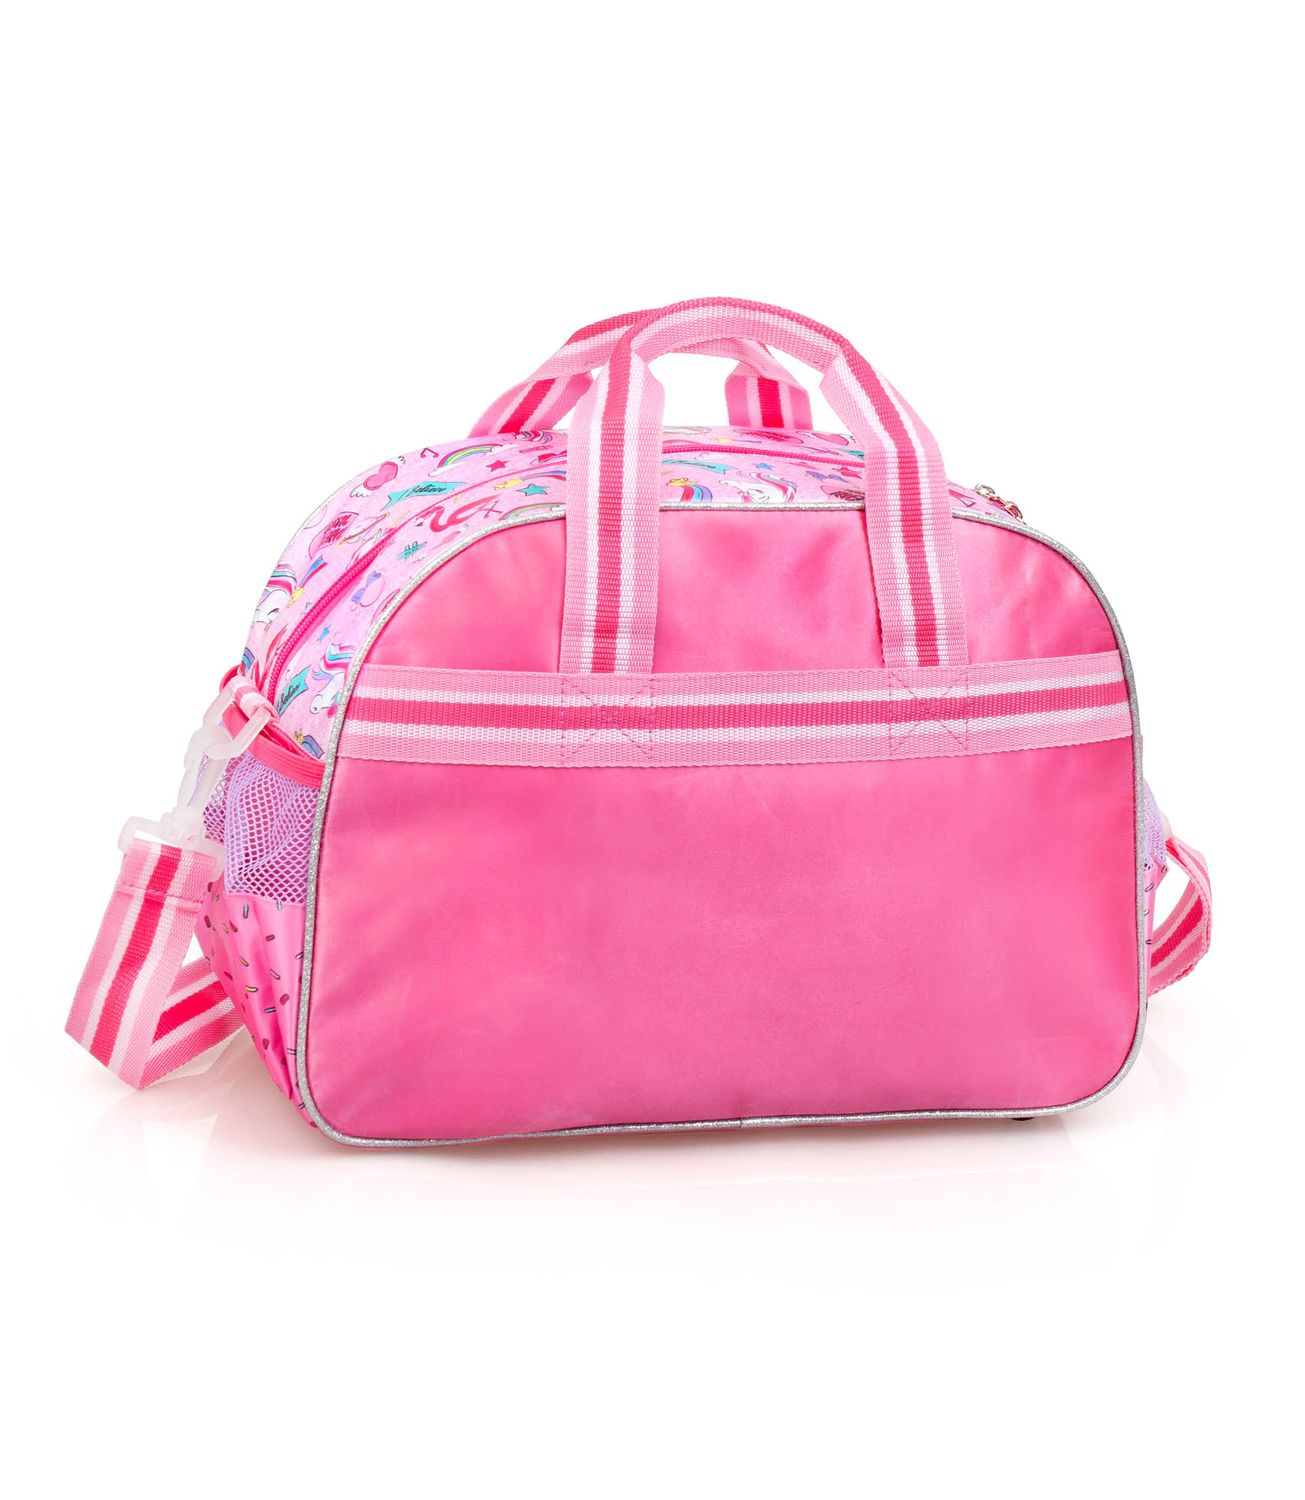 Holdall Travel Bag Minnie Mouse Unicorn – image 2